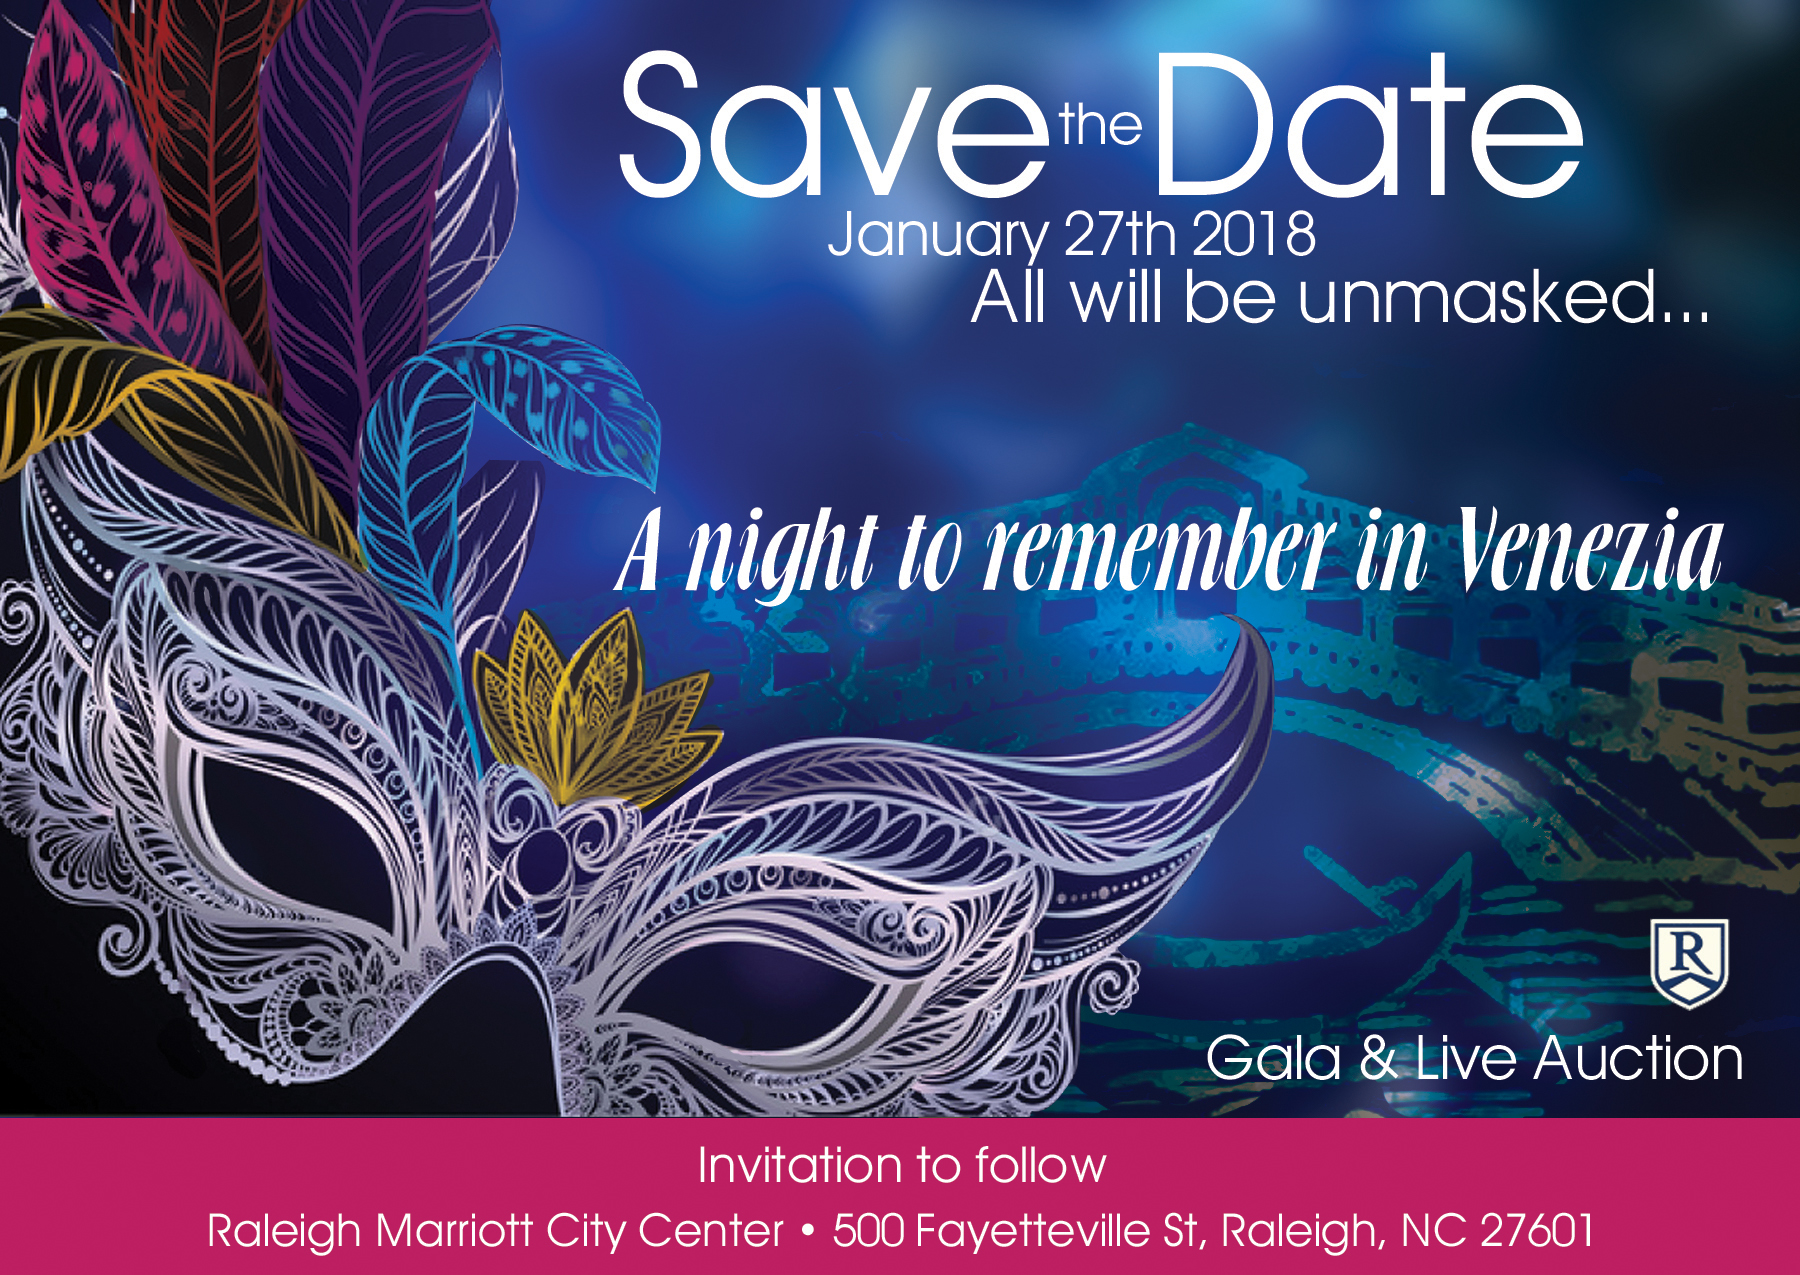 gala & live auction